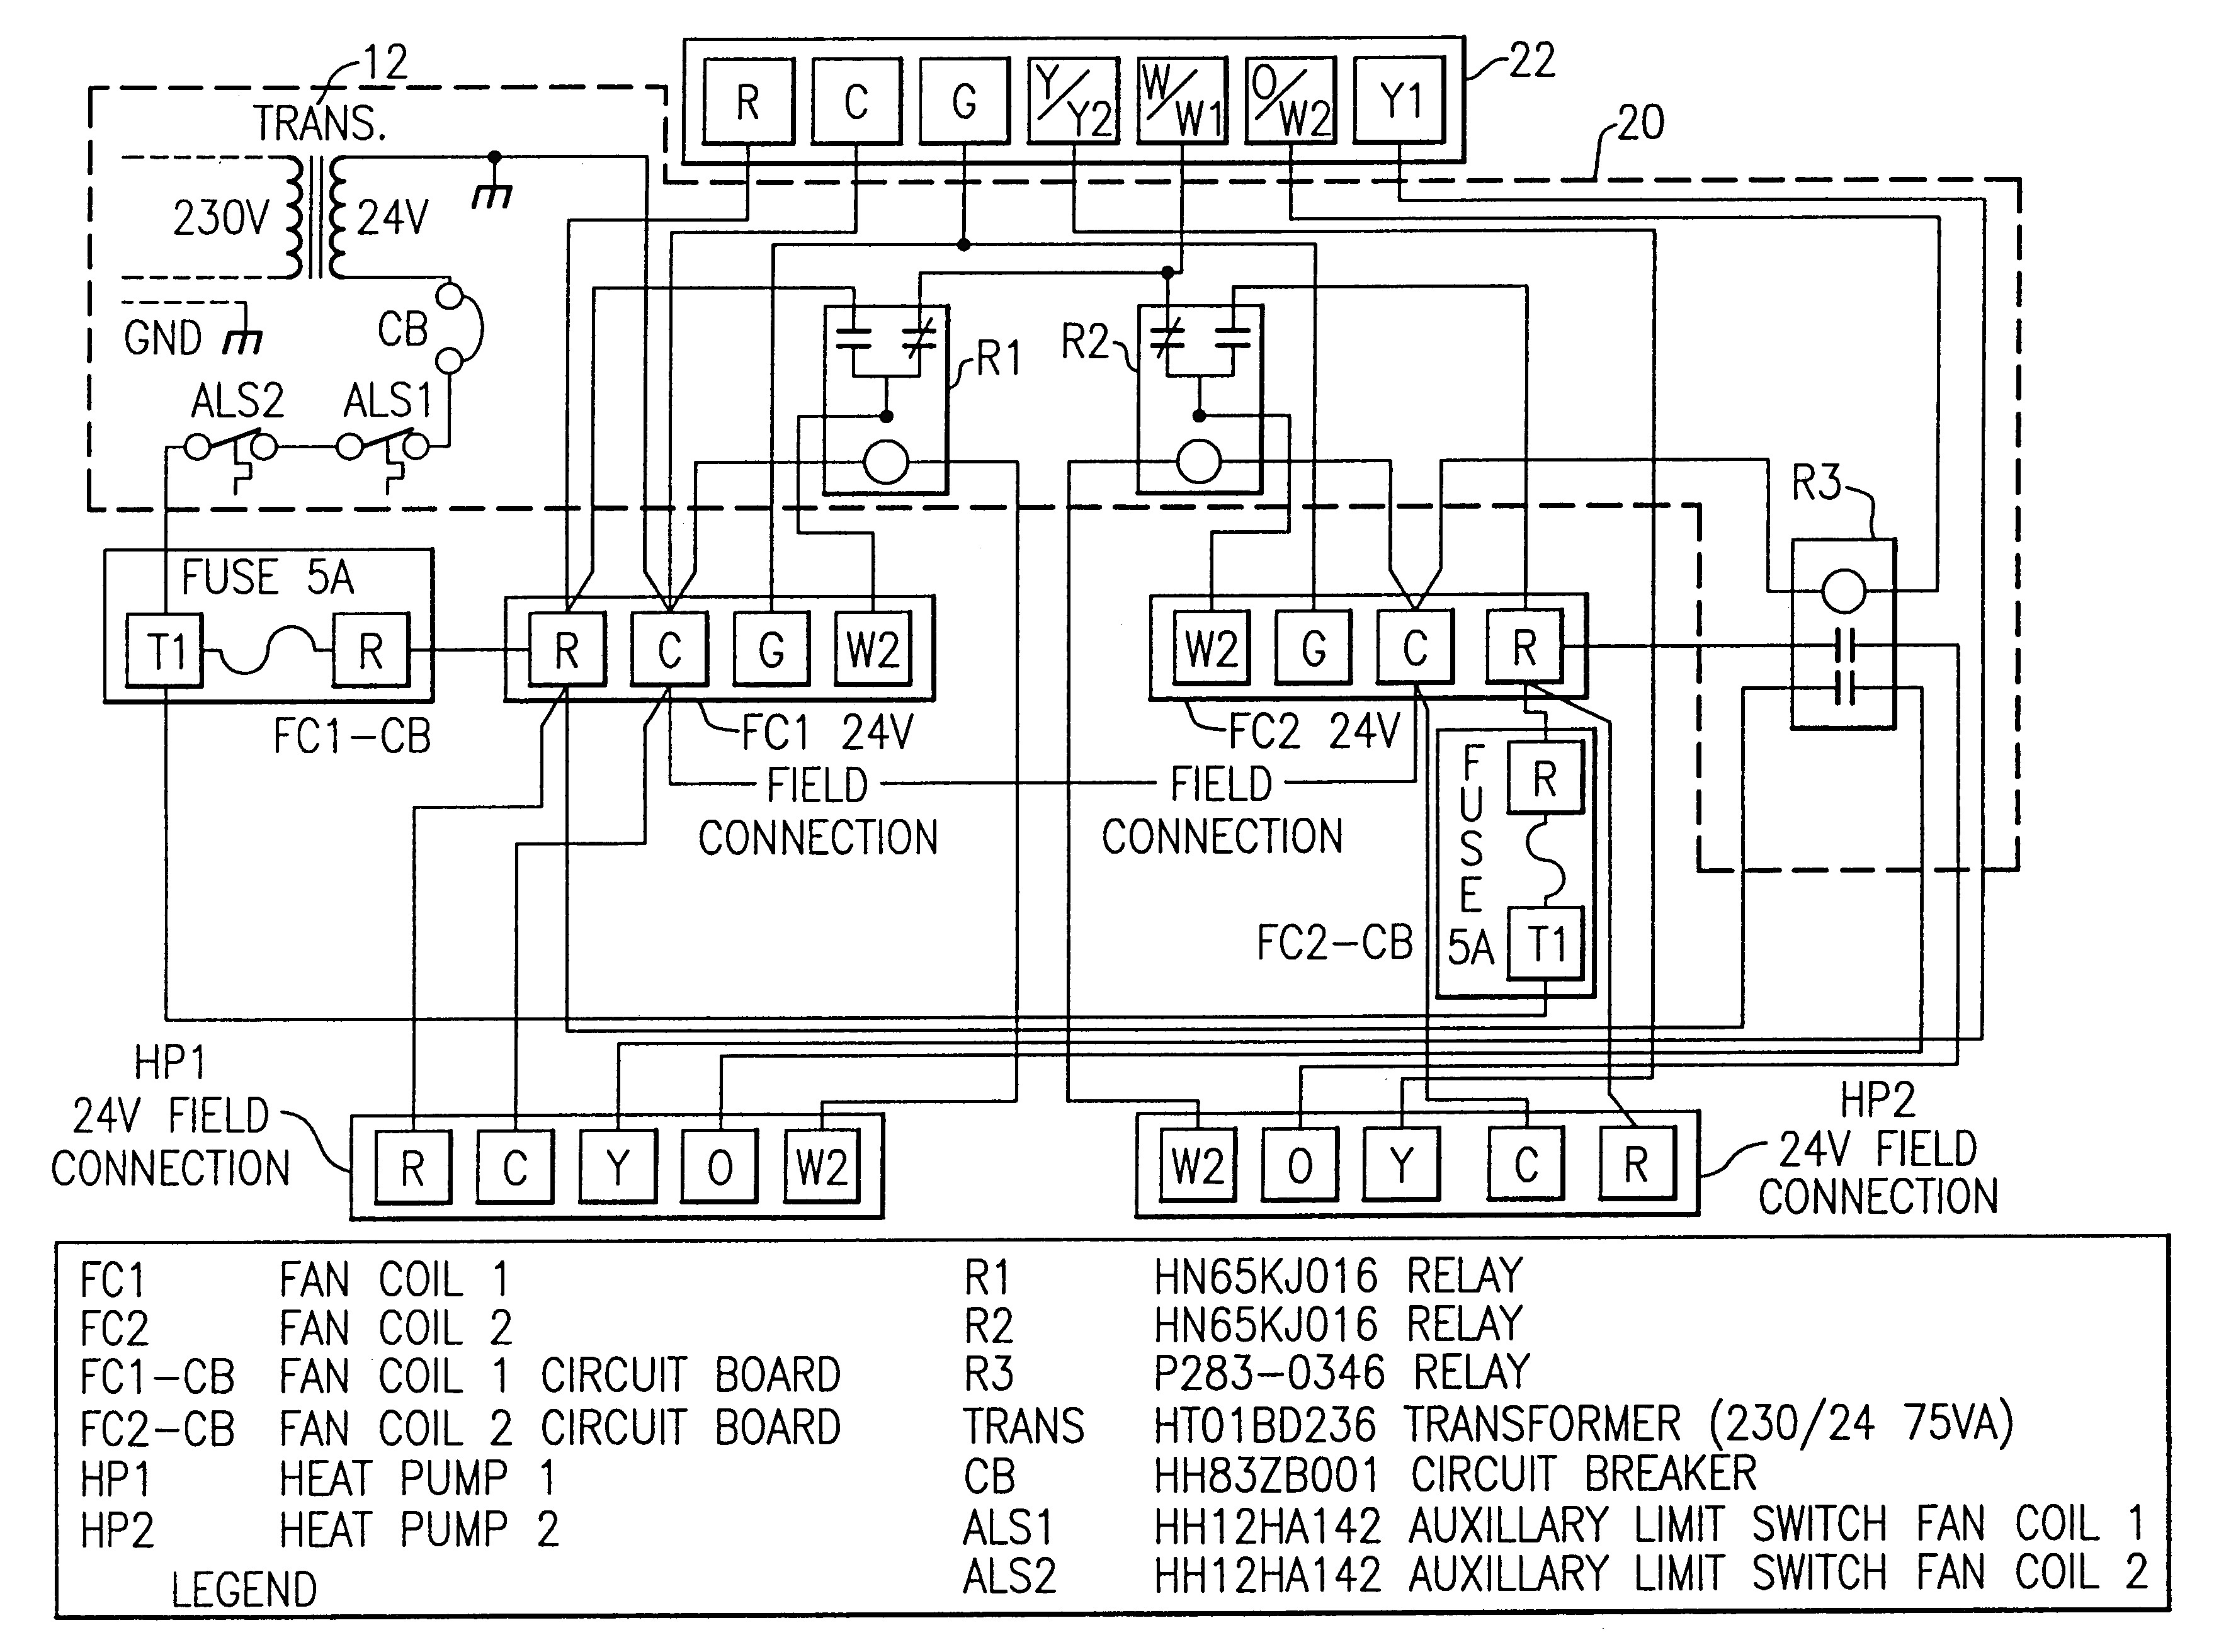 American standard heat pump wiring diagram awesome wiring diagram gas furnace wiring diagram luxury stain american standard with entrancing standards swarovskicordoba Image collections